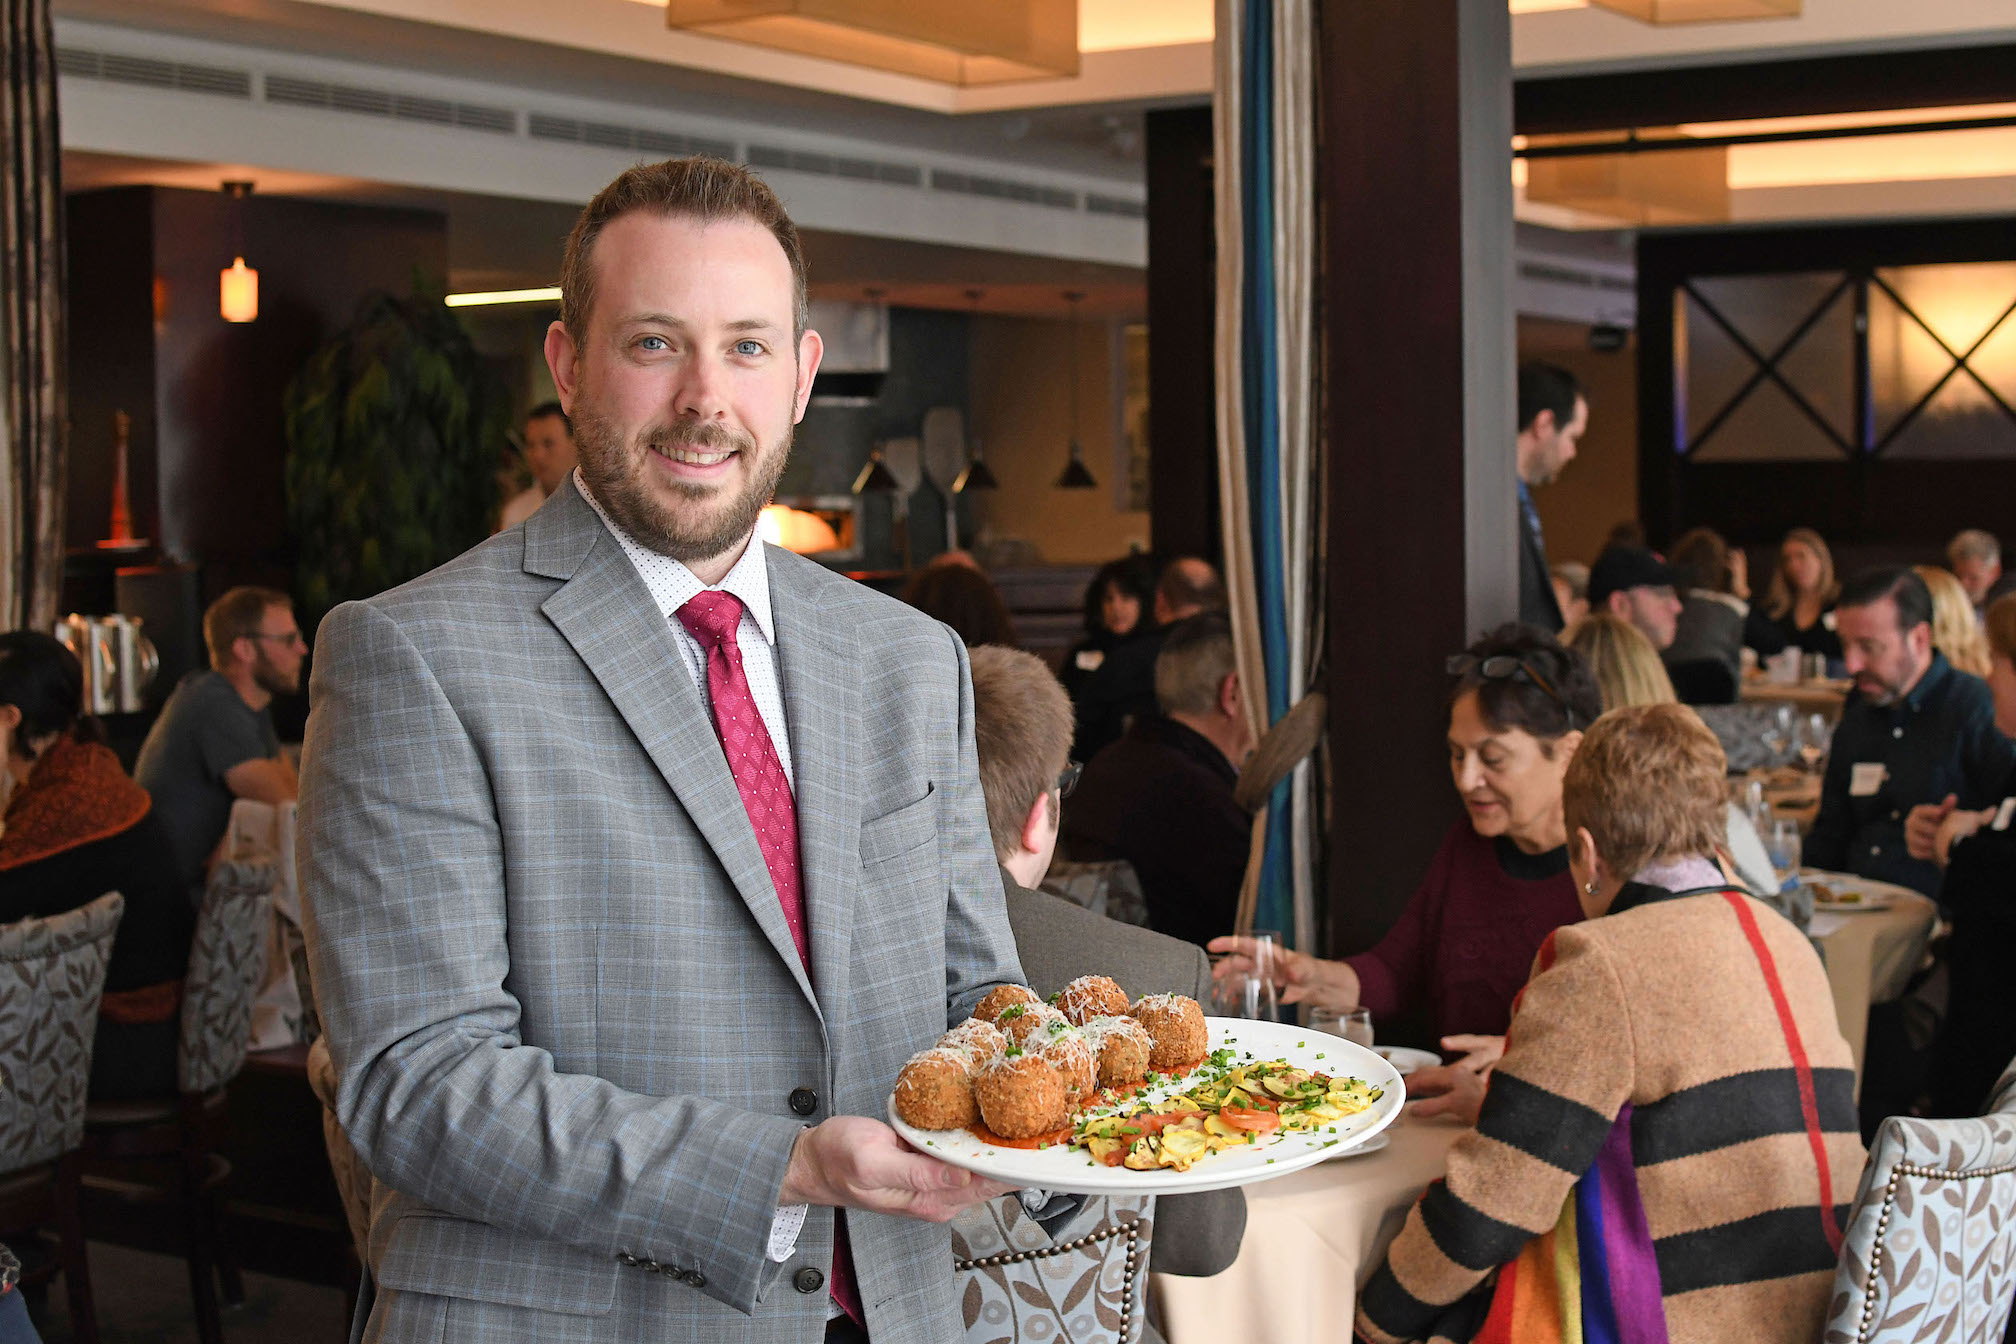 The Niagara Falls Culinary Institute hospitality instructor Daniel DiPirro presents a plate of arancini featured on the seasonal menu at Savor Restaurant.